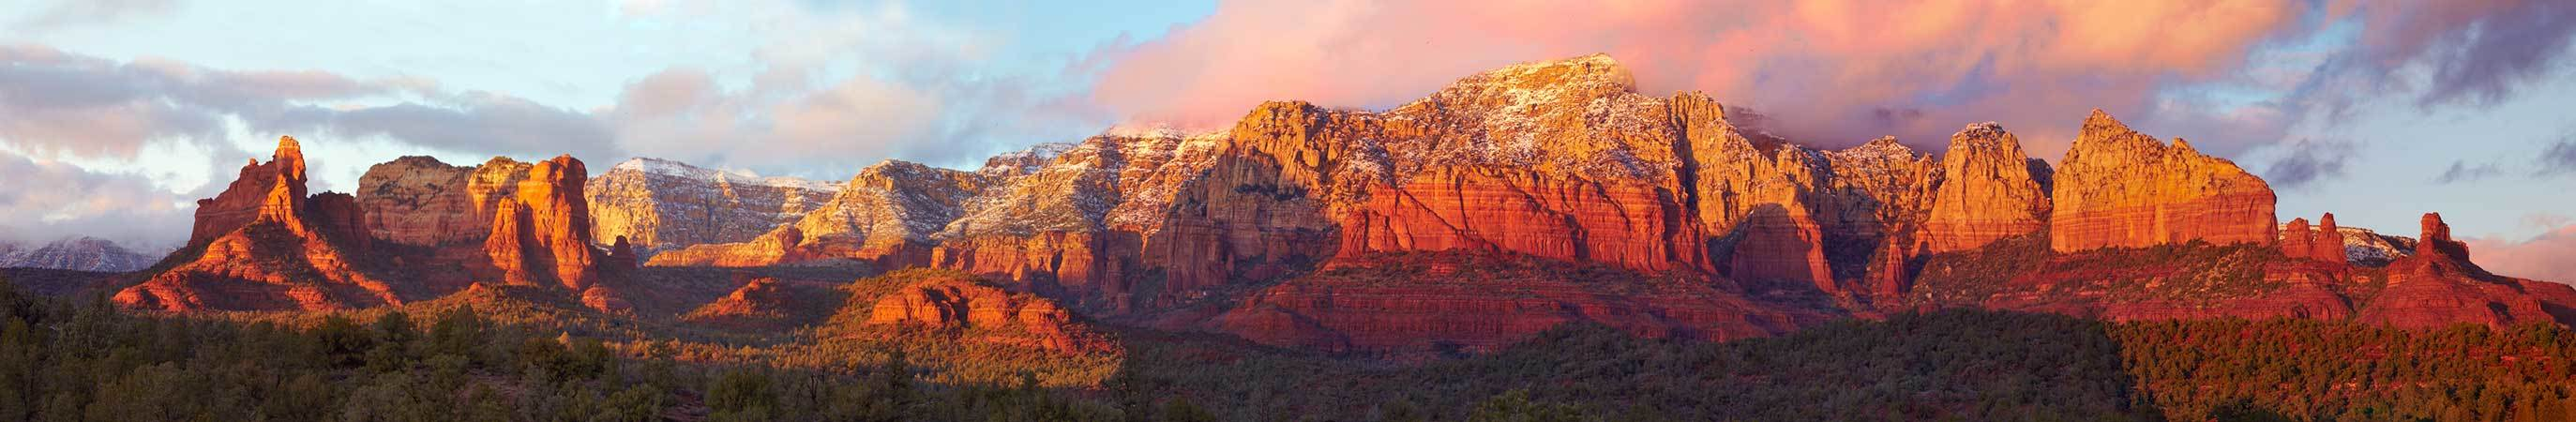 <div class='title'>           Sedona-Rouge-Panorama-by-Monika-Hilleary-hp7duk         </div>